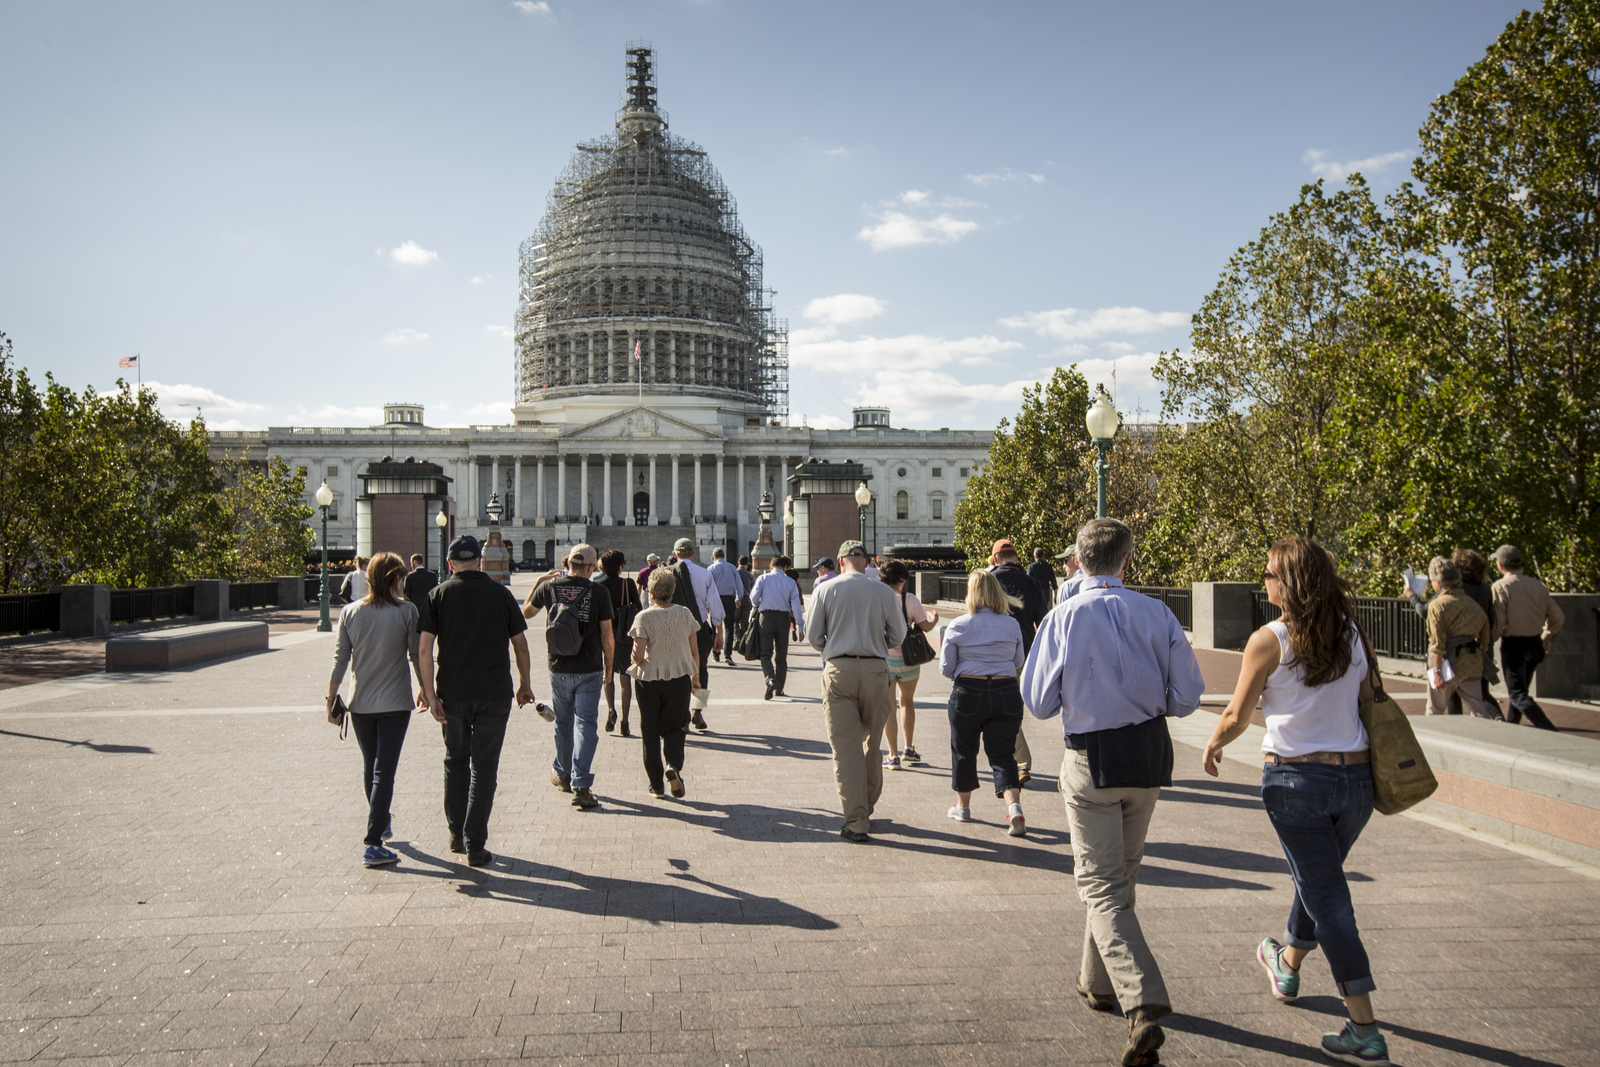 Nature Conservancy Board Members, Trustees, and staff gather for the 2015 Volunteer Leadership Summit in Washington, DC. Photo © Mike Olliver